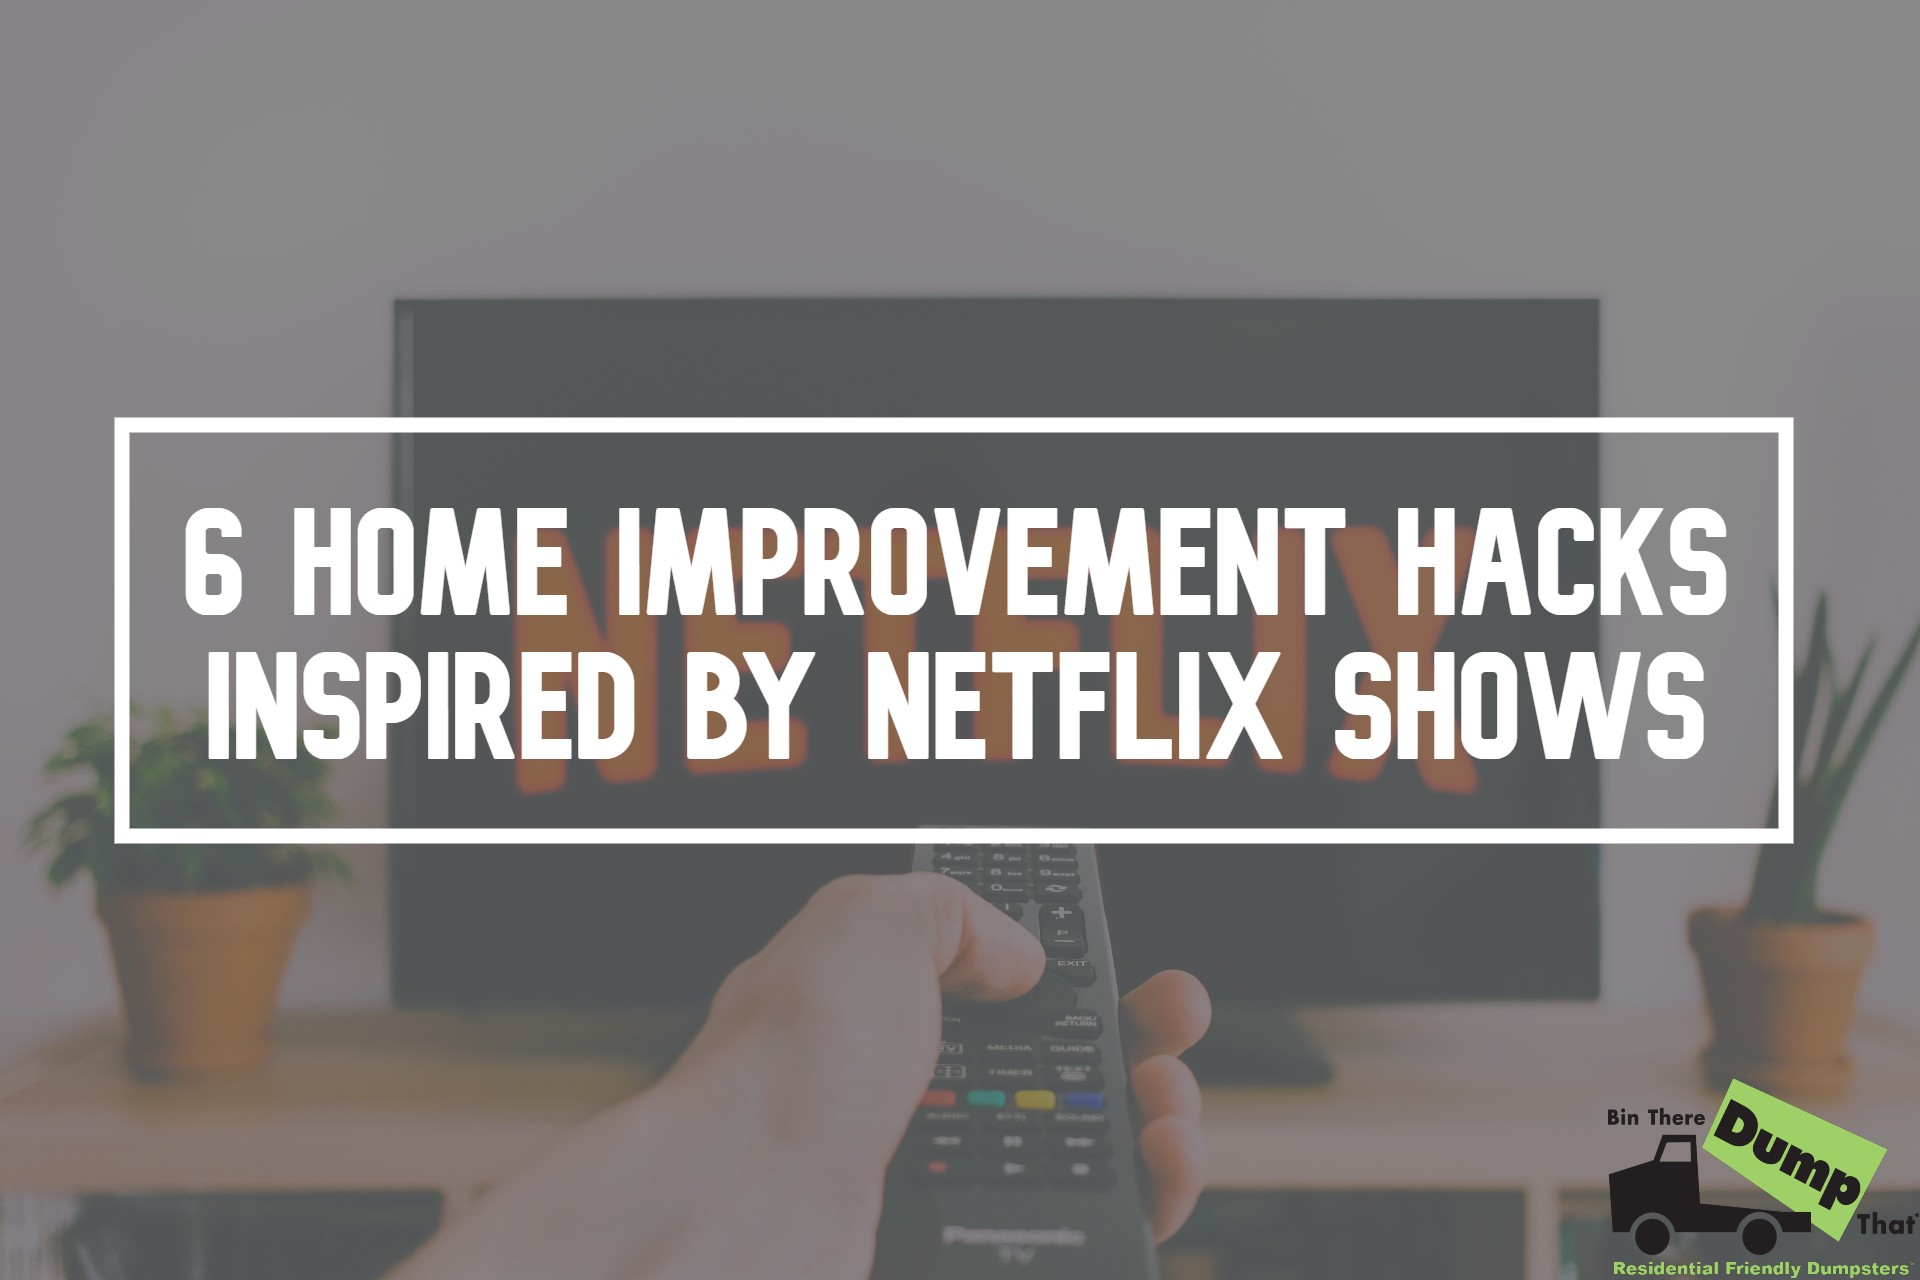 6 Home Improvement Hacks Inspired By Netflix Shows